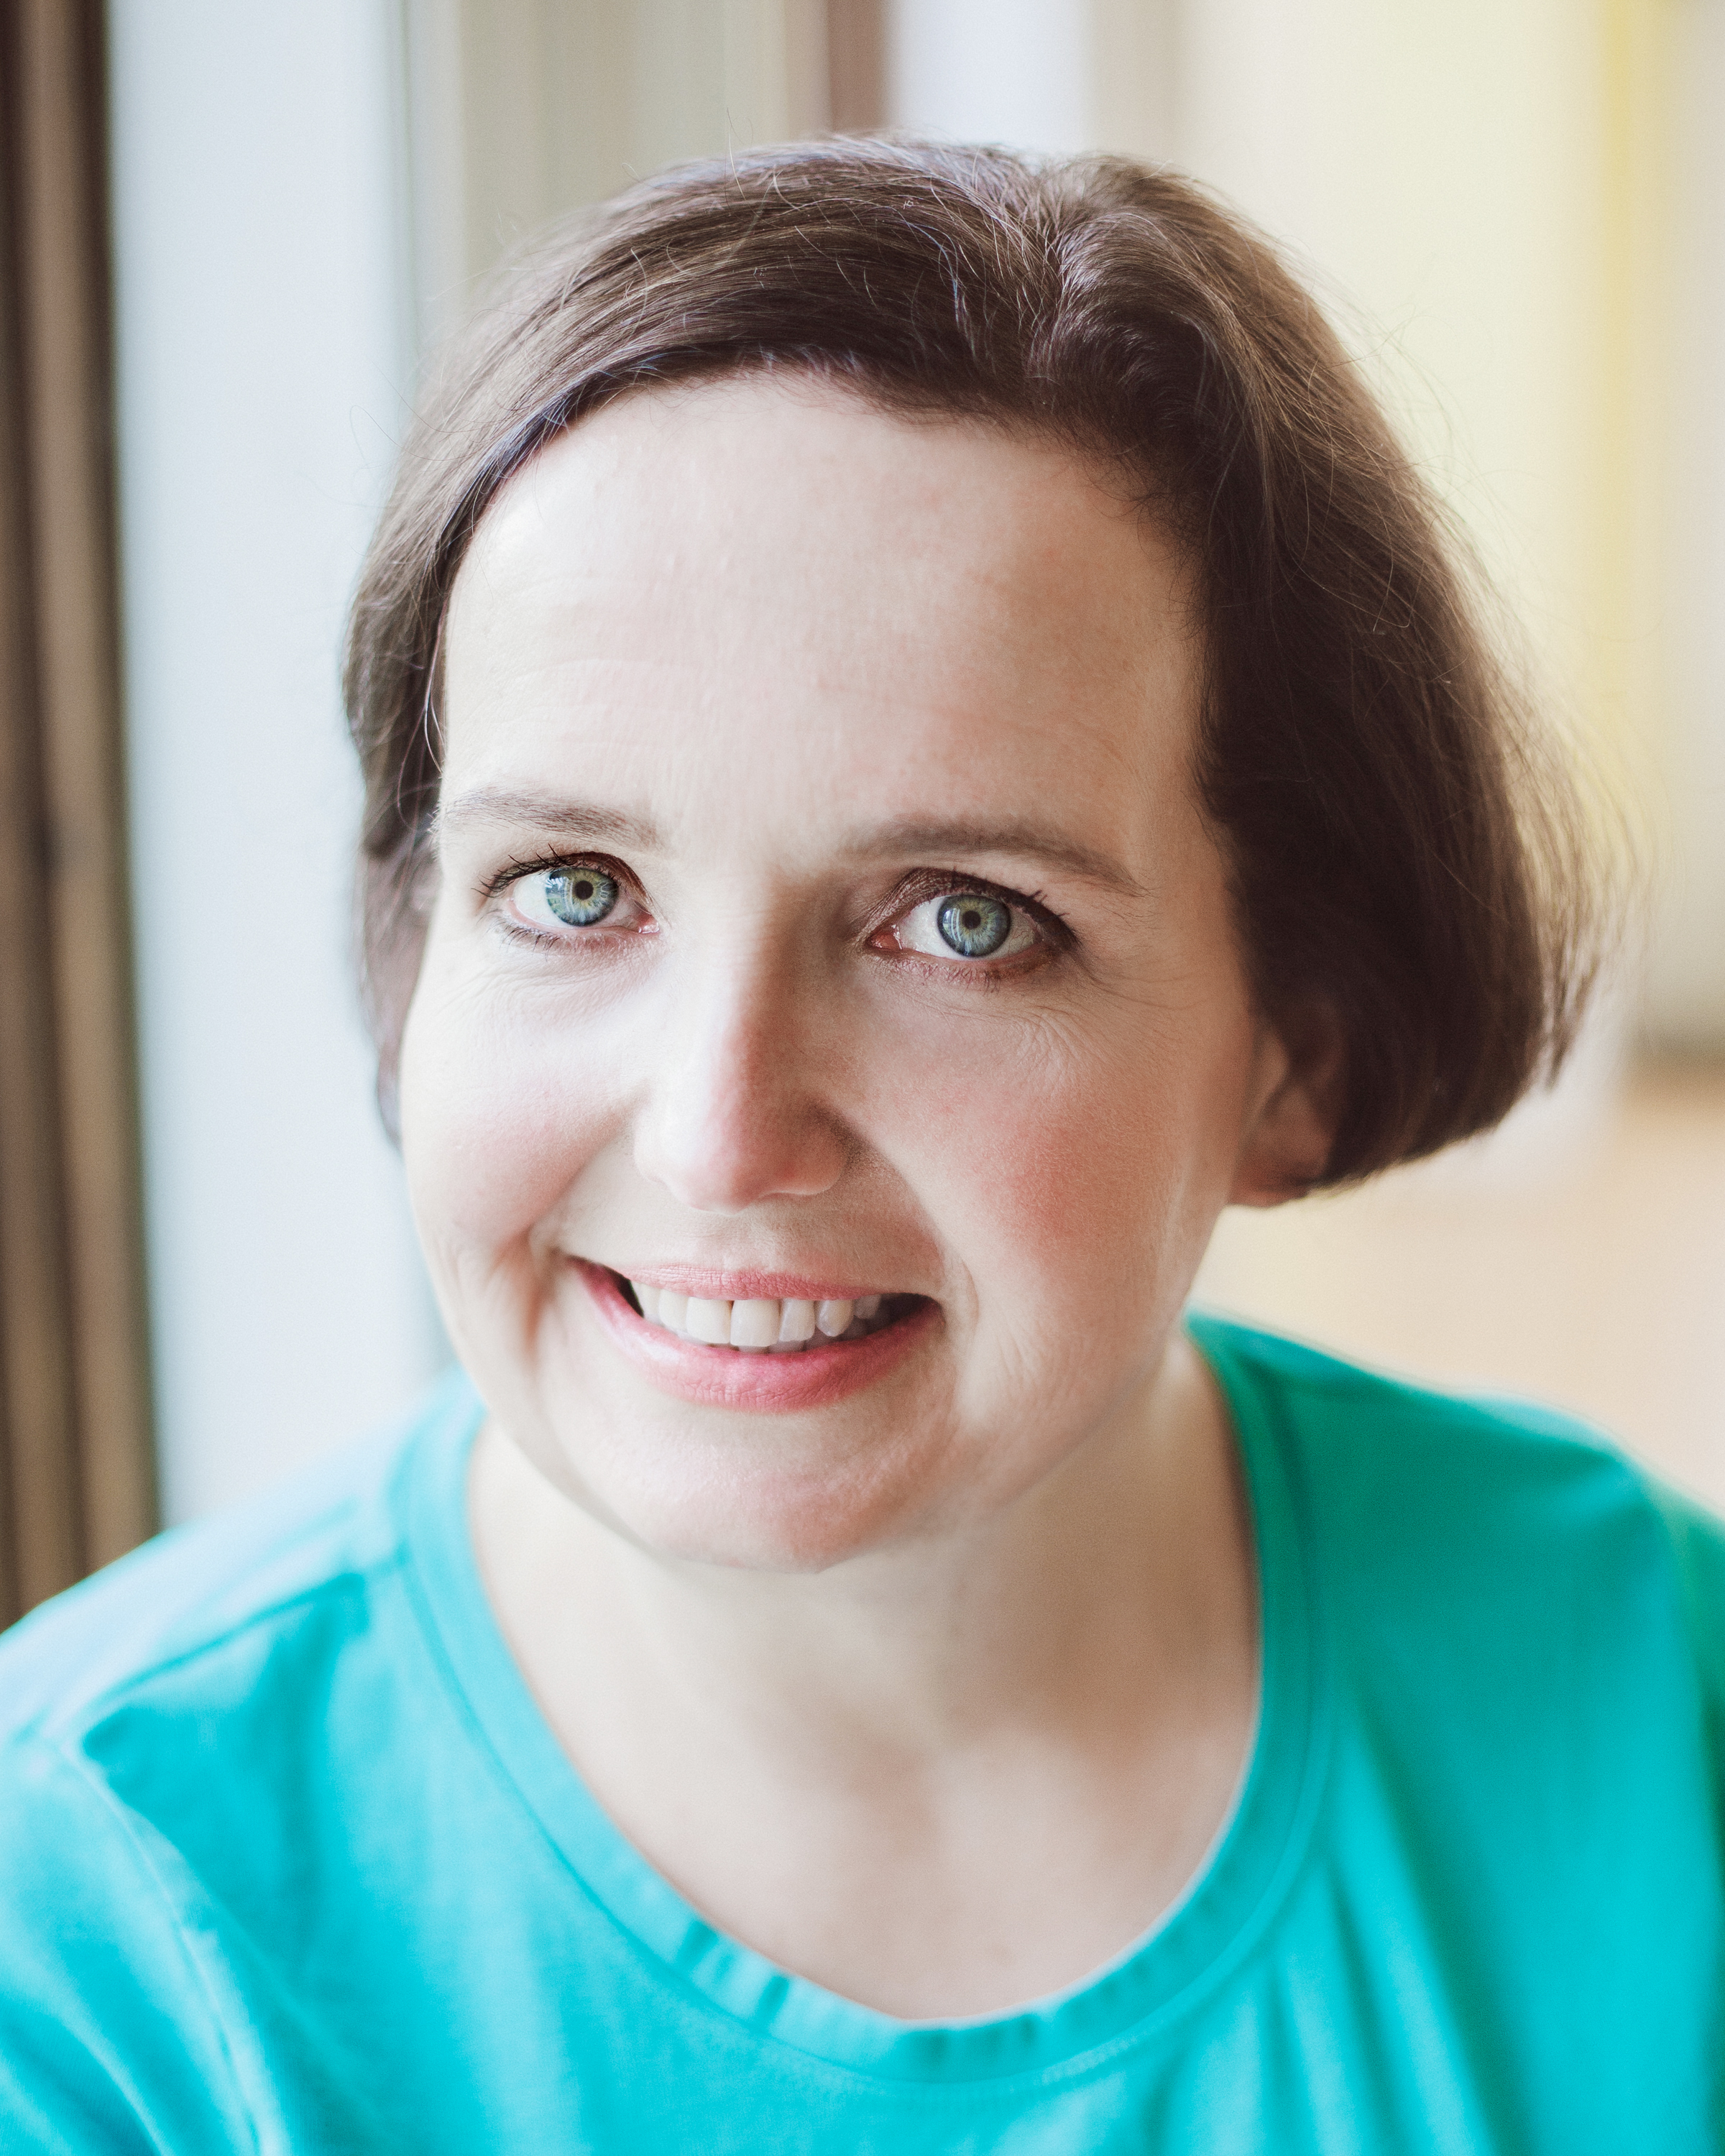 #SocialforGood #WIBN Conference Speaker Spotlight: @AnnDouglas – How to be a Happy Writer